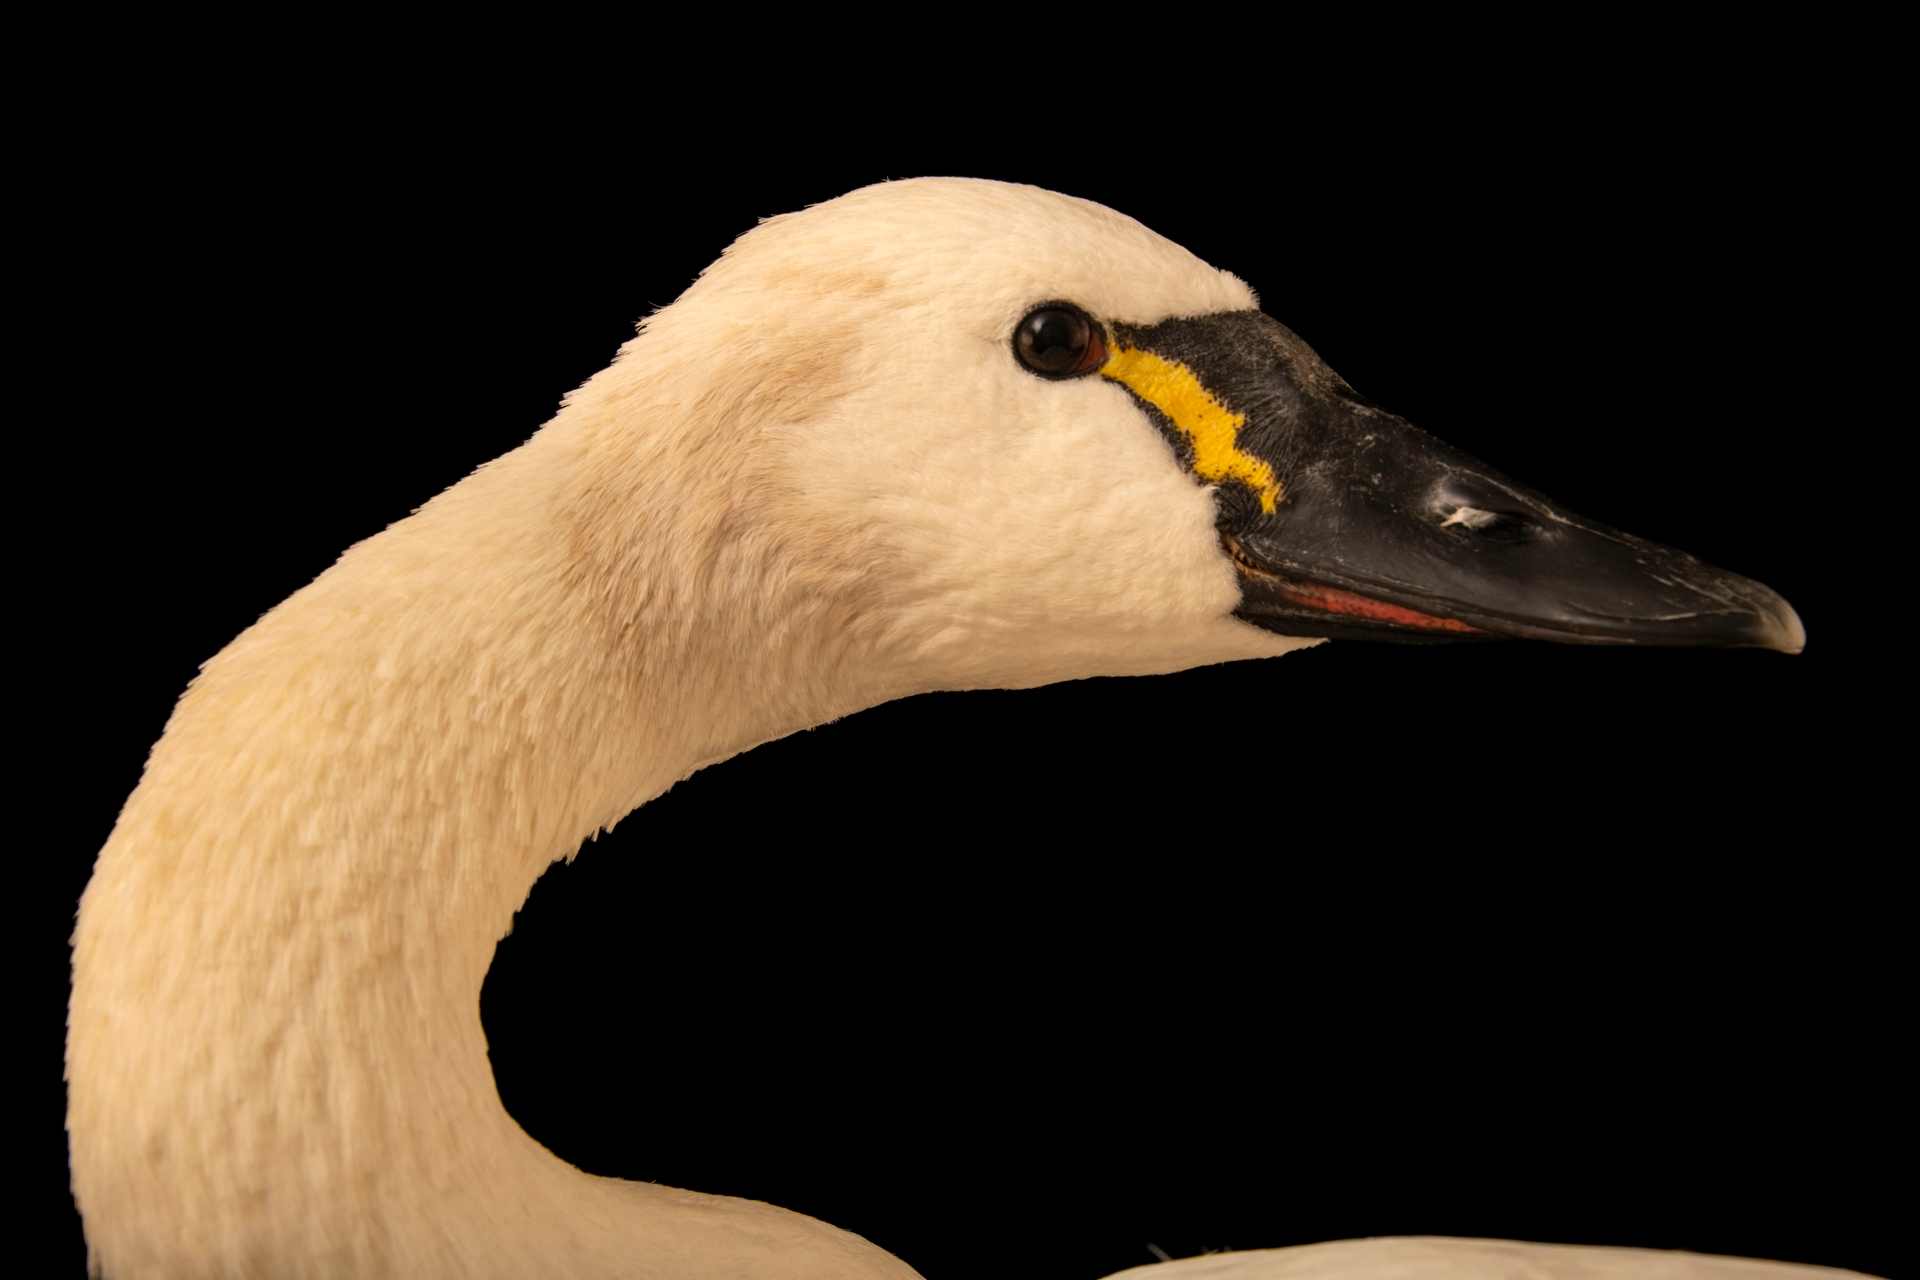 A tundra swan (Cygnus columbianus columbianus) at the Carolina Waterfowl Rescue.